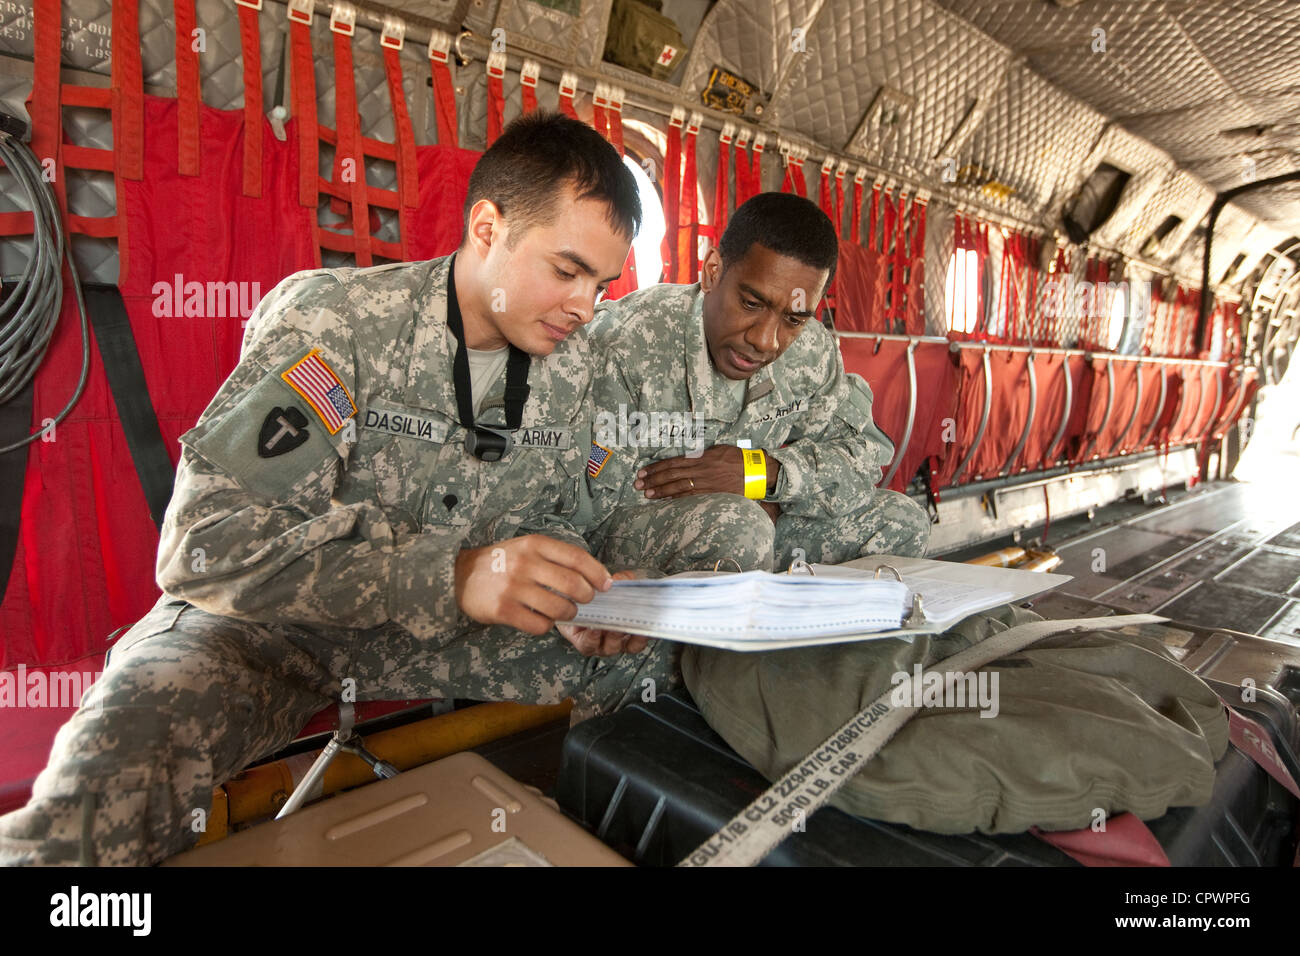 members of the United States Army in uniform review information inside a military aircraft for emergency disaster - Stock Image